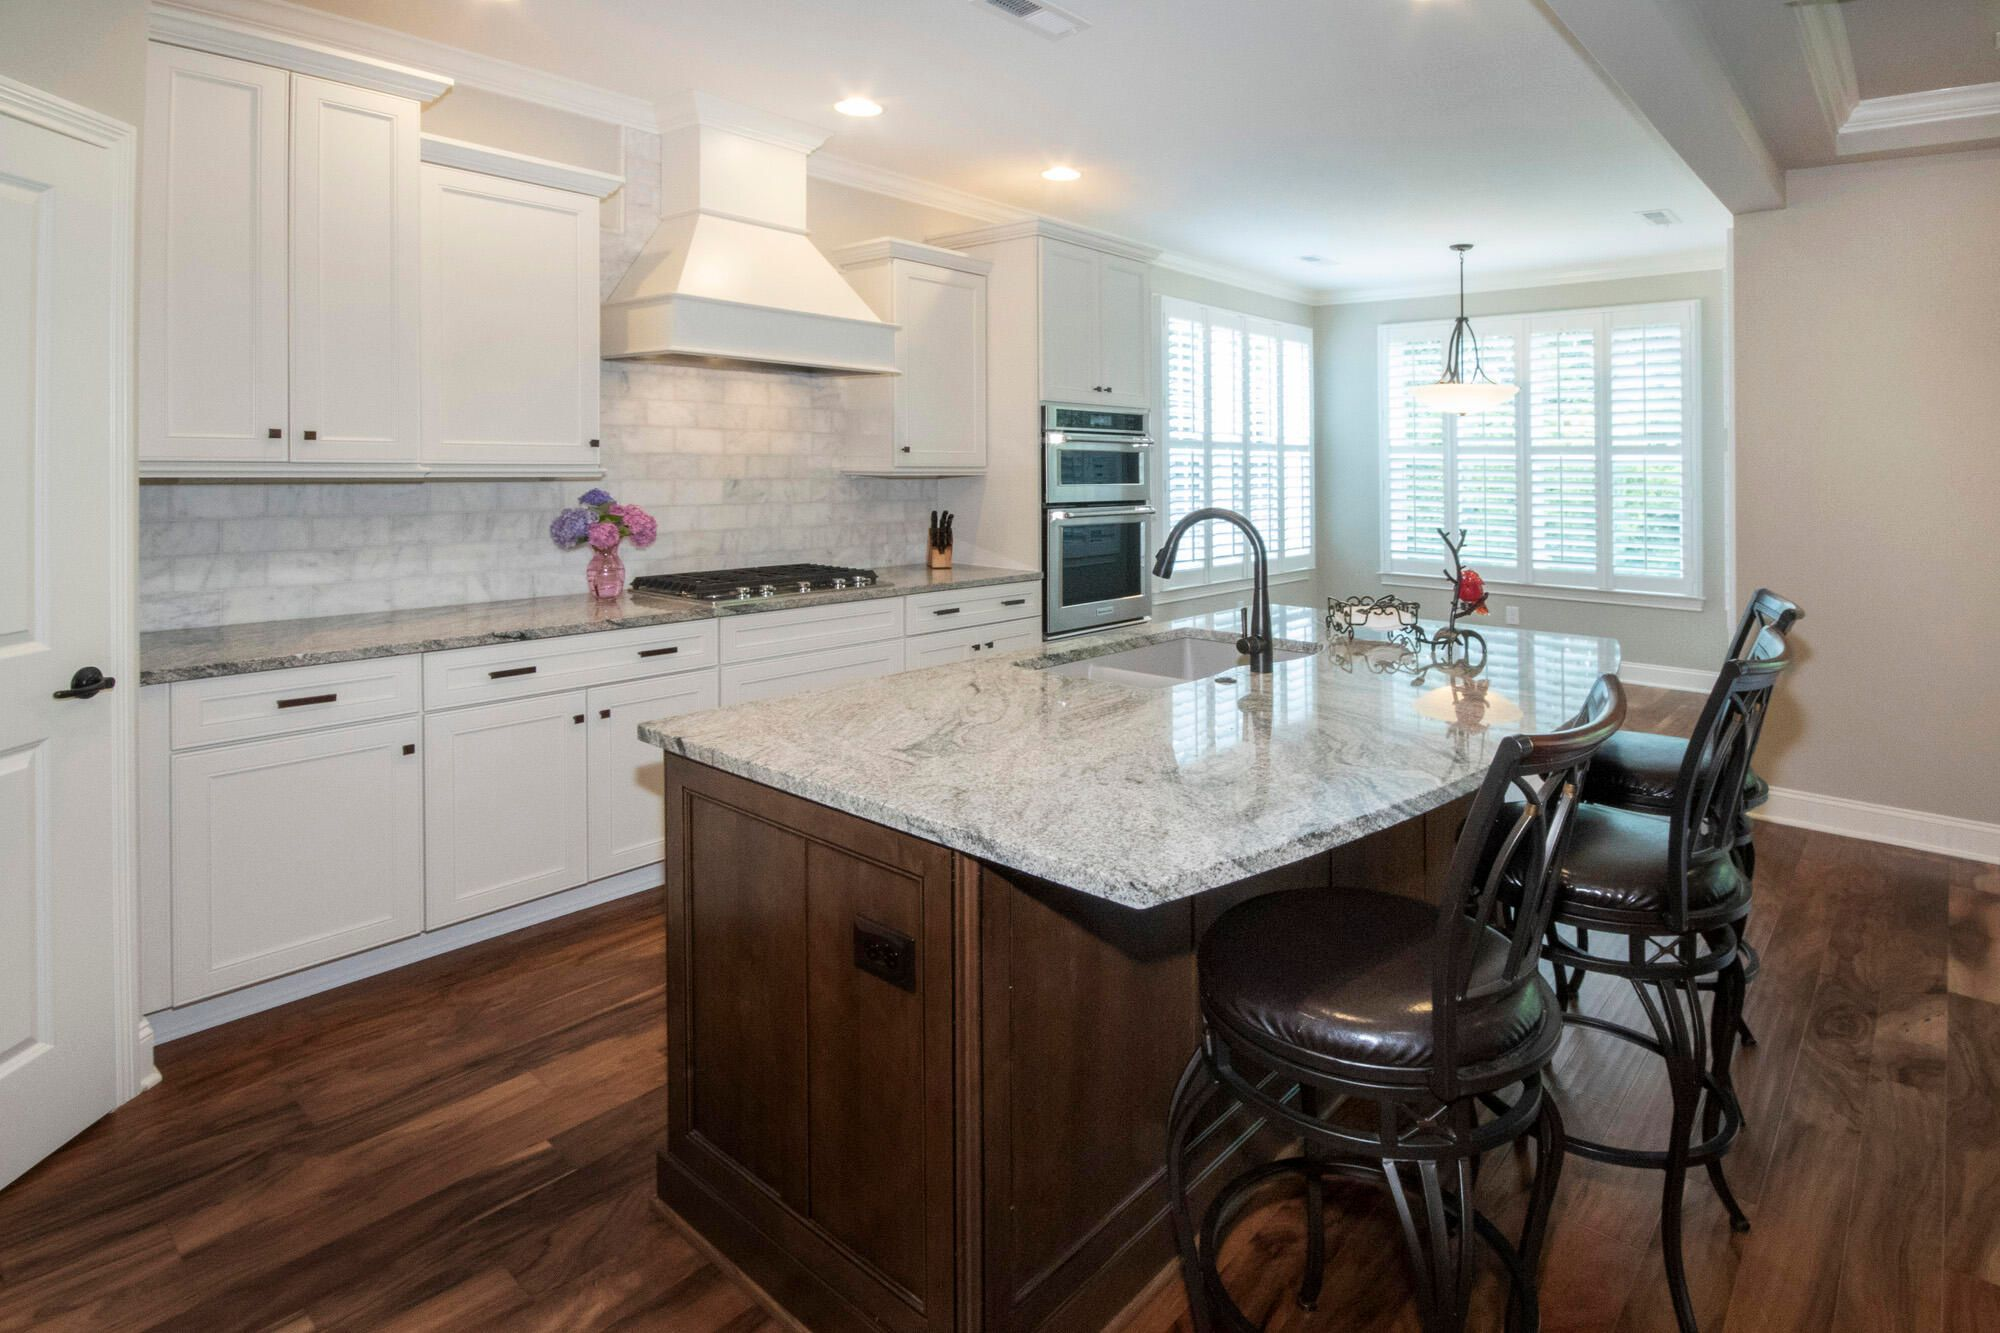 Upgraded kitchen & appliance package